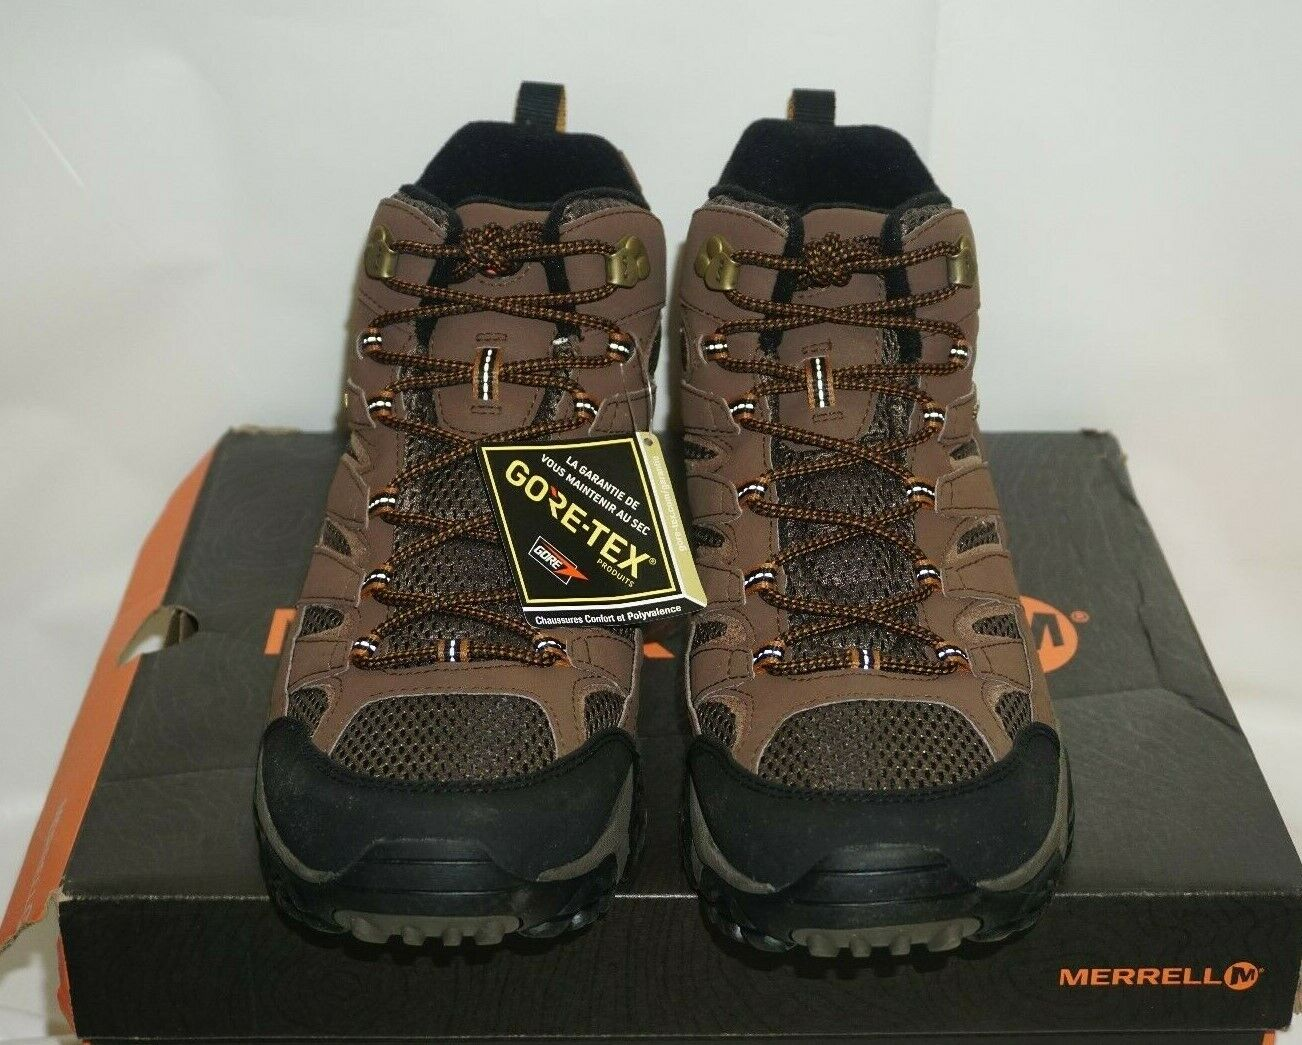 Hommes Merrell Moab 2 Mid GTX, terre-Taille 11.5 US